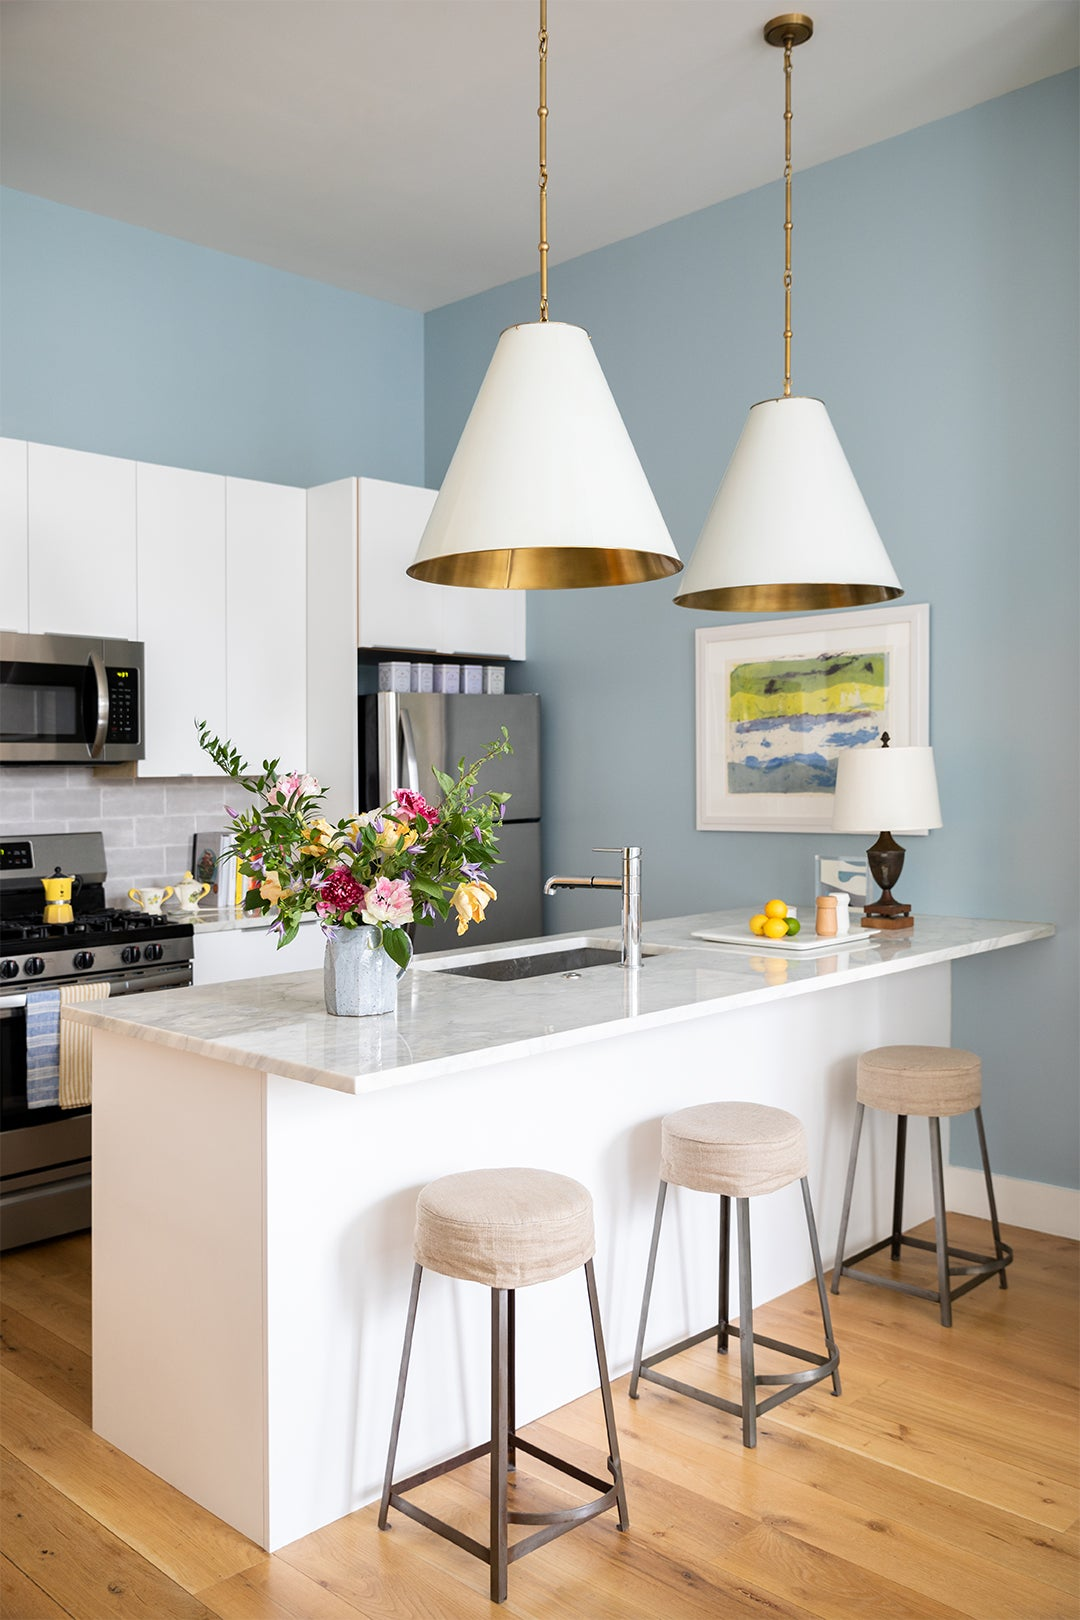 Painted Kitchen Island With Three Bar Stools and Large Pendant Lights